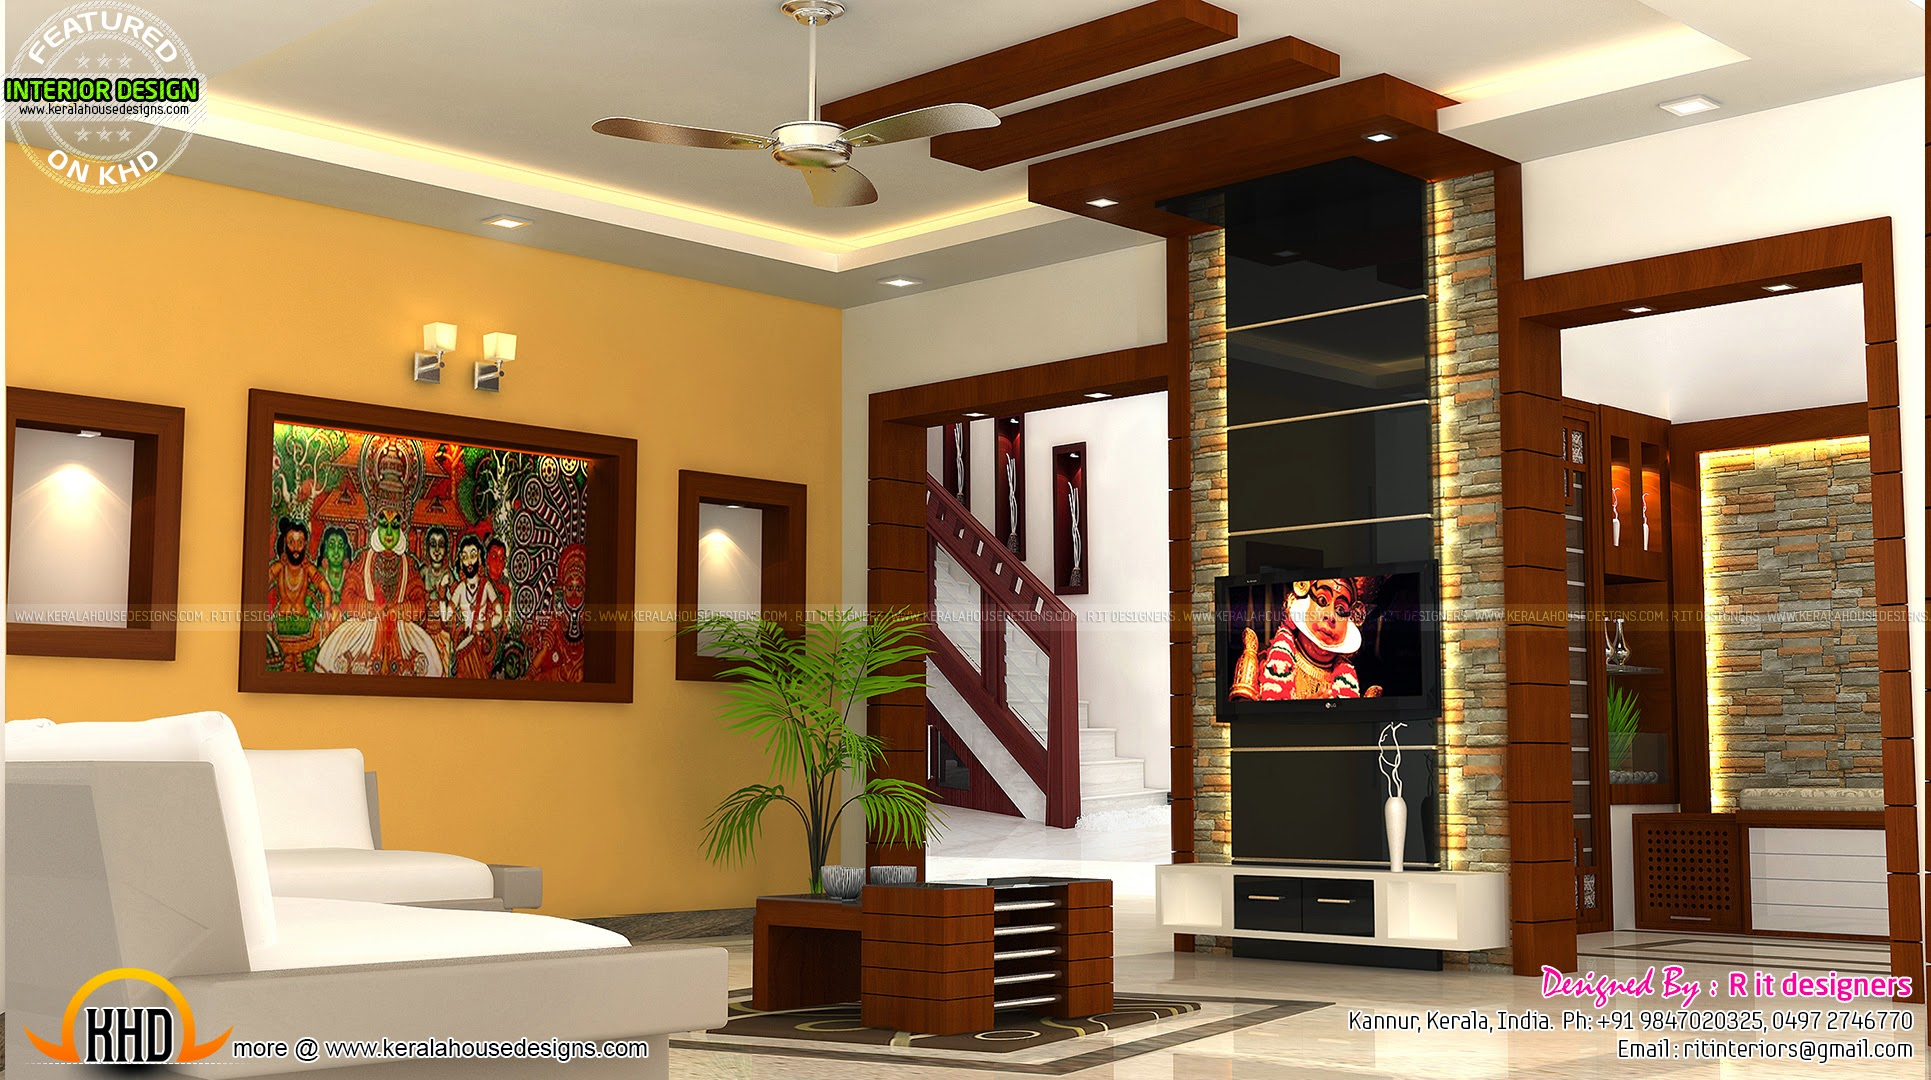 Kerala interior design with cost kerala home design and for Interior design plans for houses